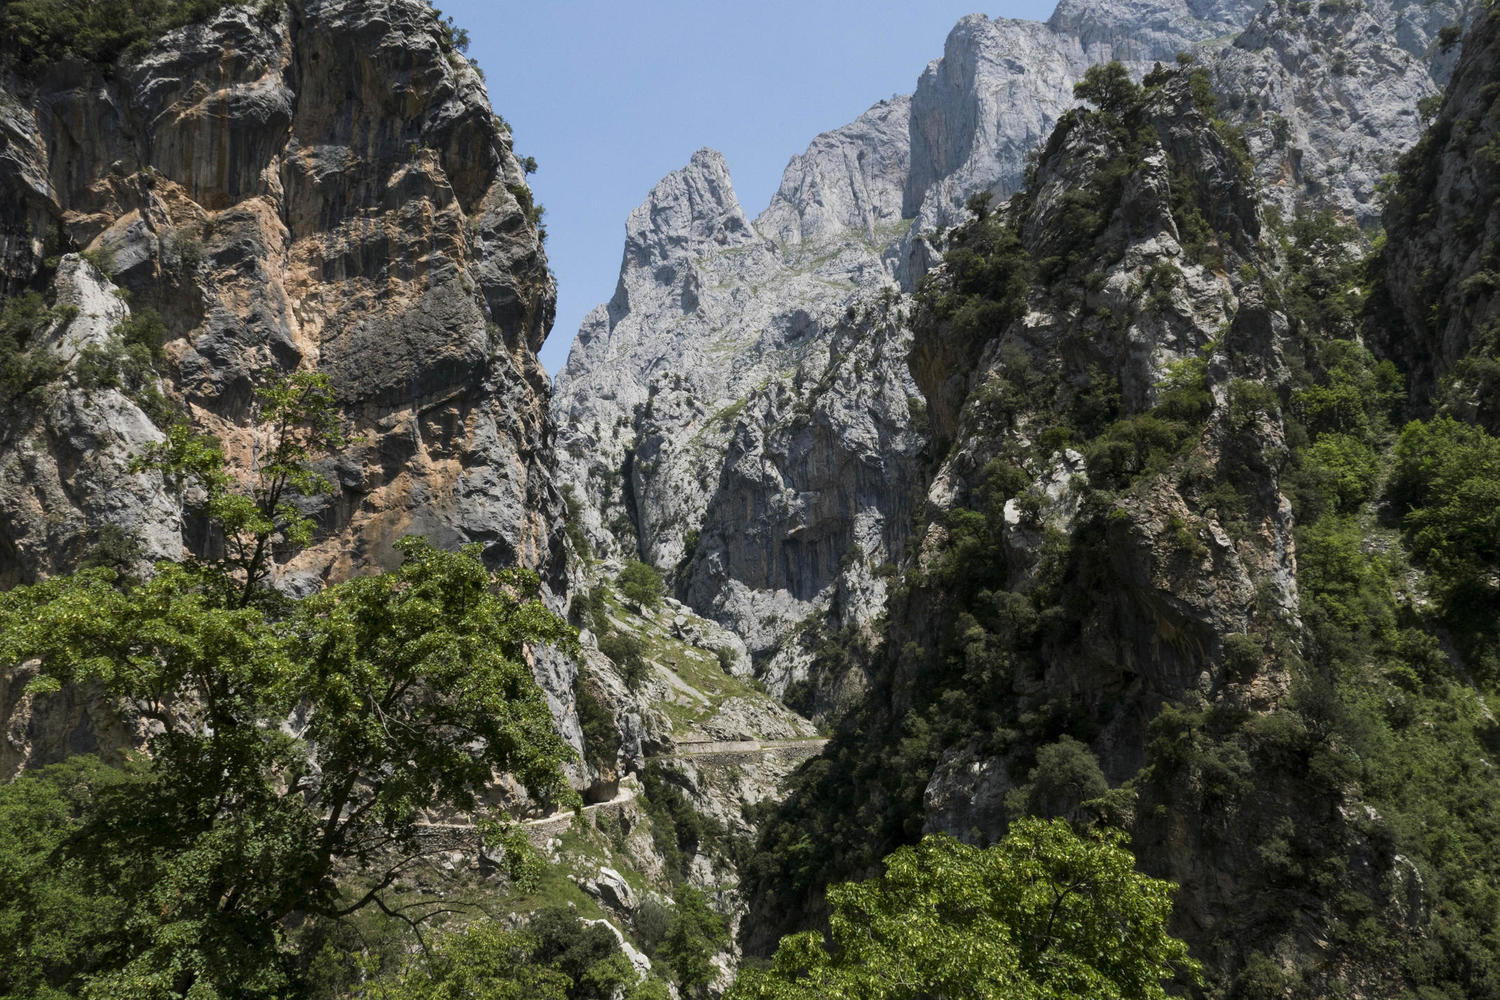 Cares gorge trail in the Picos de Europa